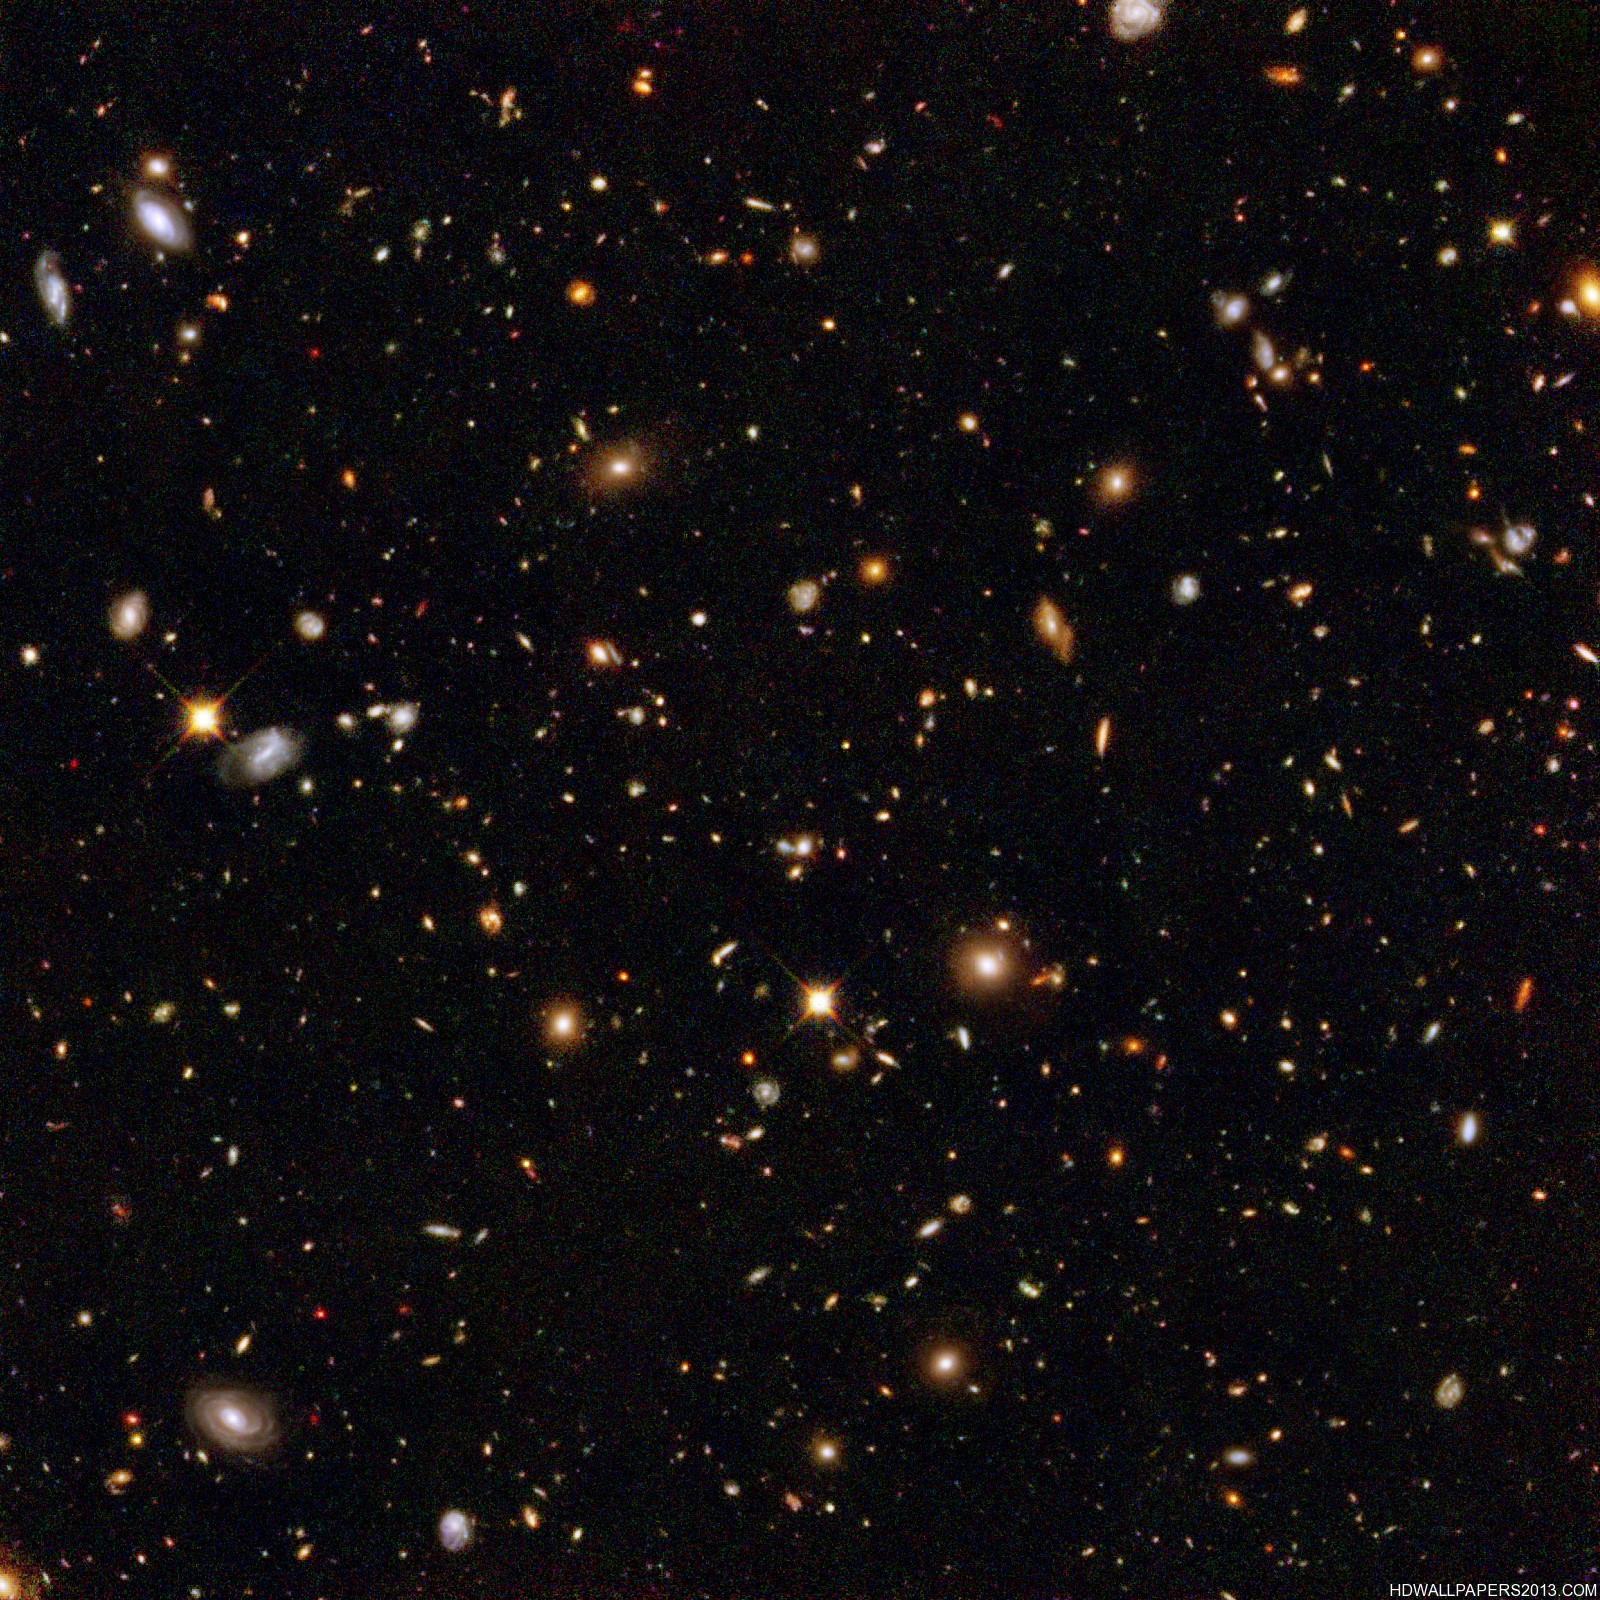 hubble deep field hd wallpaper - photo #21